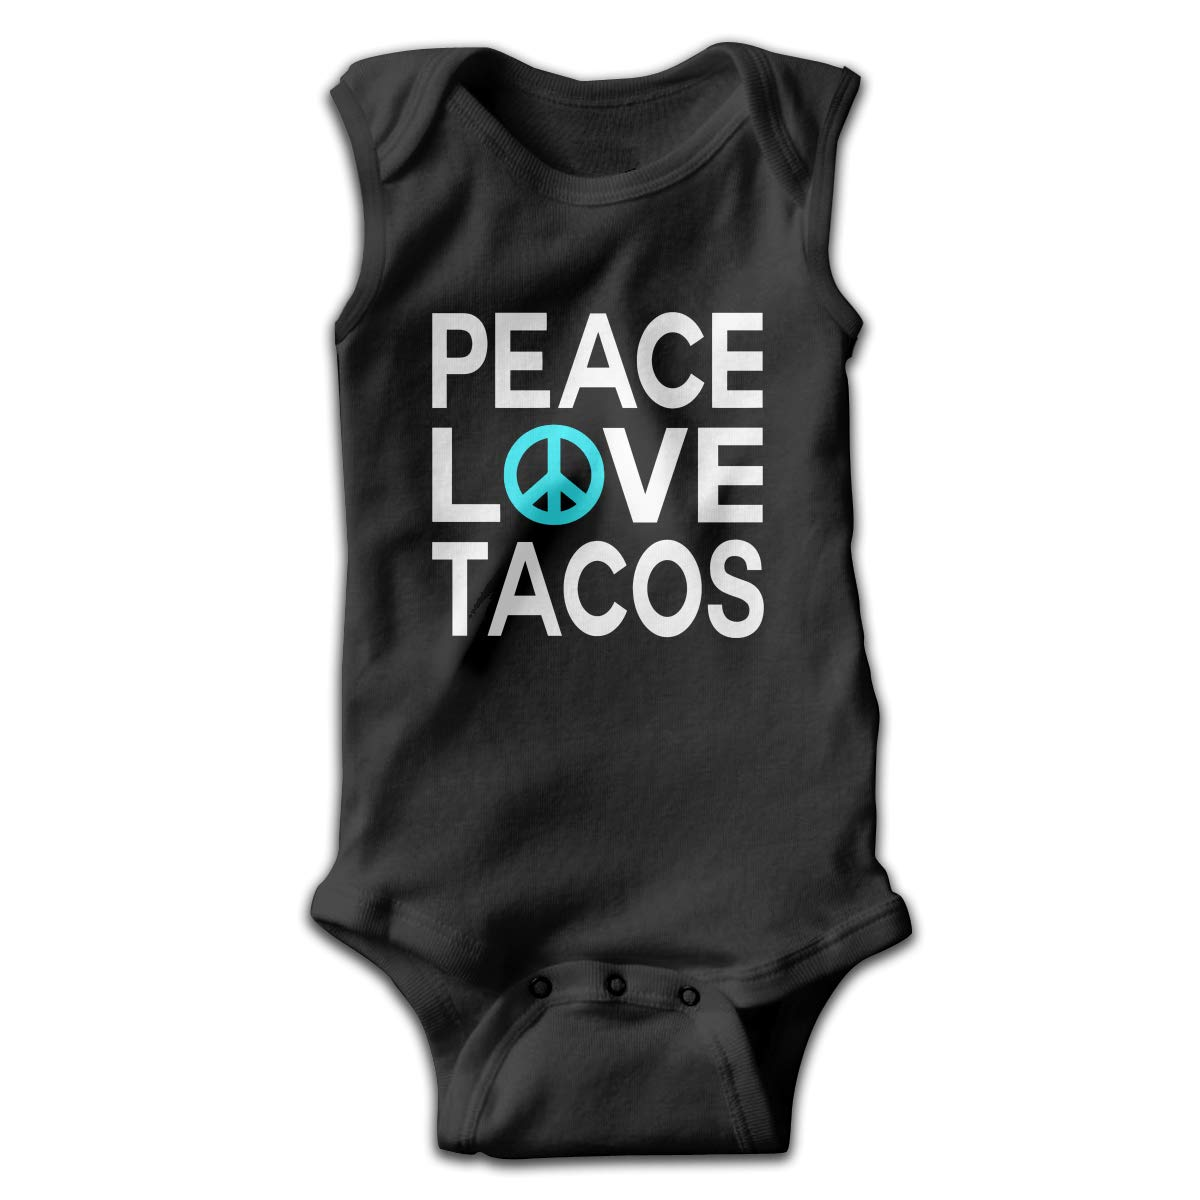 Toddler Baby Boys Rompers Sleeveless Cotton Jumpsuit,Peace Love Tacos Outfit Spring Pajamas